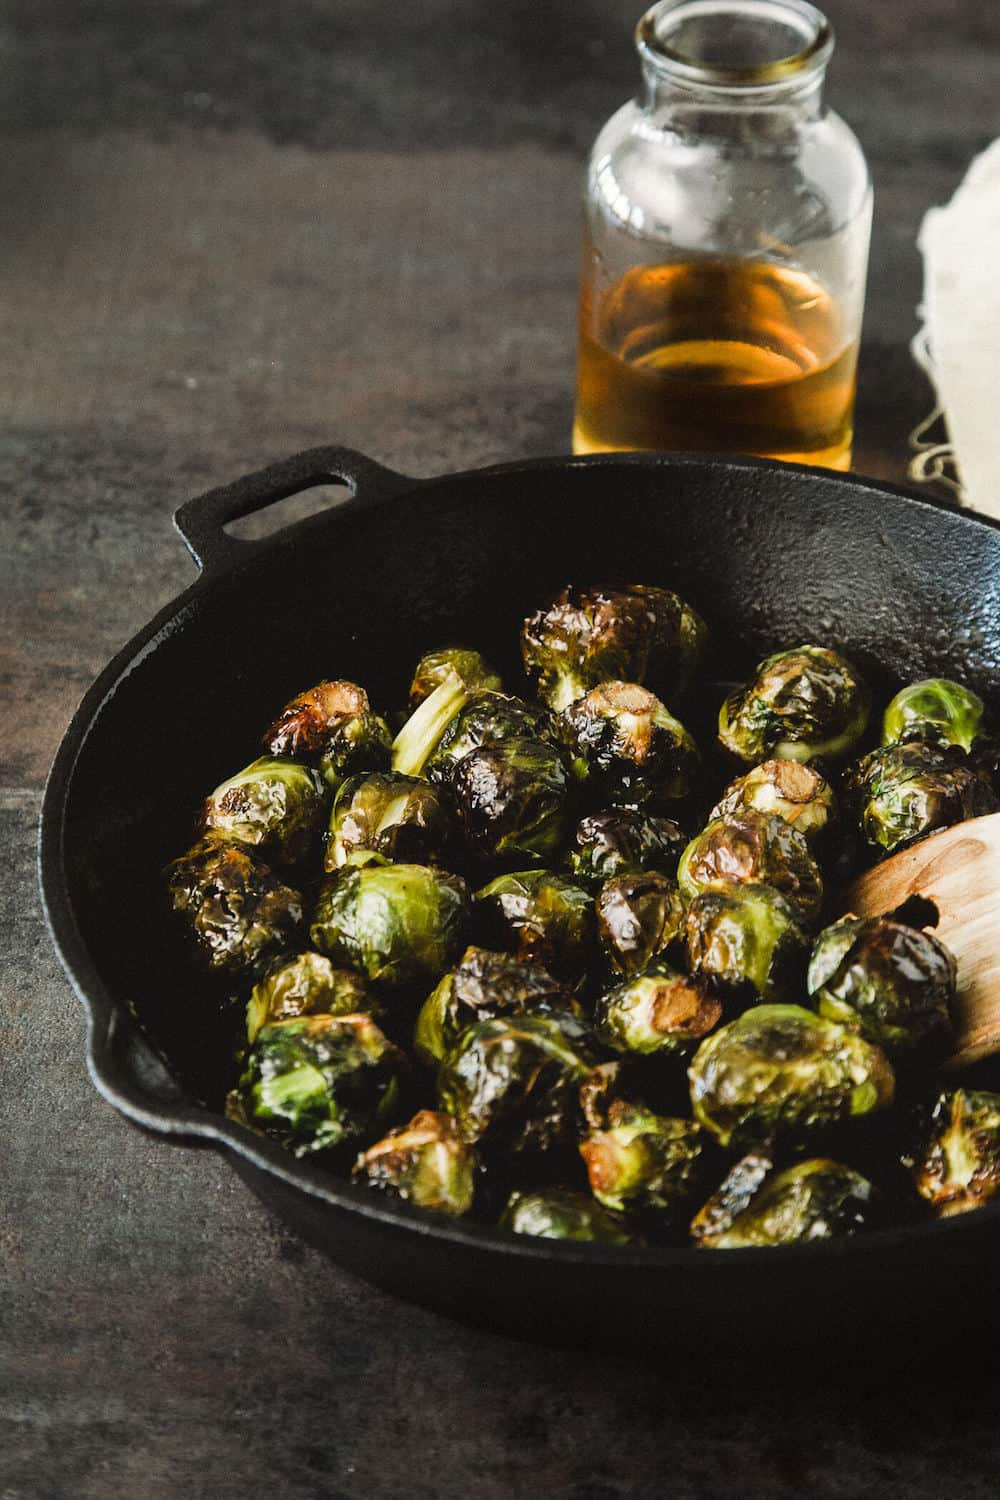 This roasted brussel sprouts dish features brown sugar and apple cider; it also does the impossible: bridges the gap between salad and dessert.